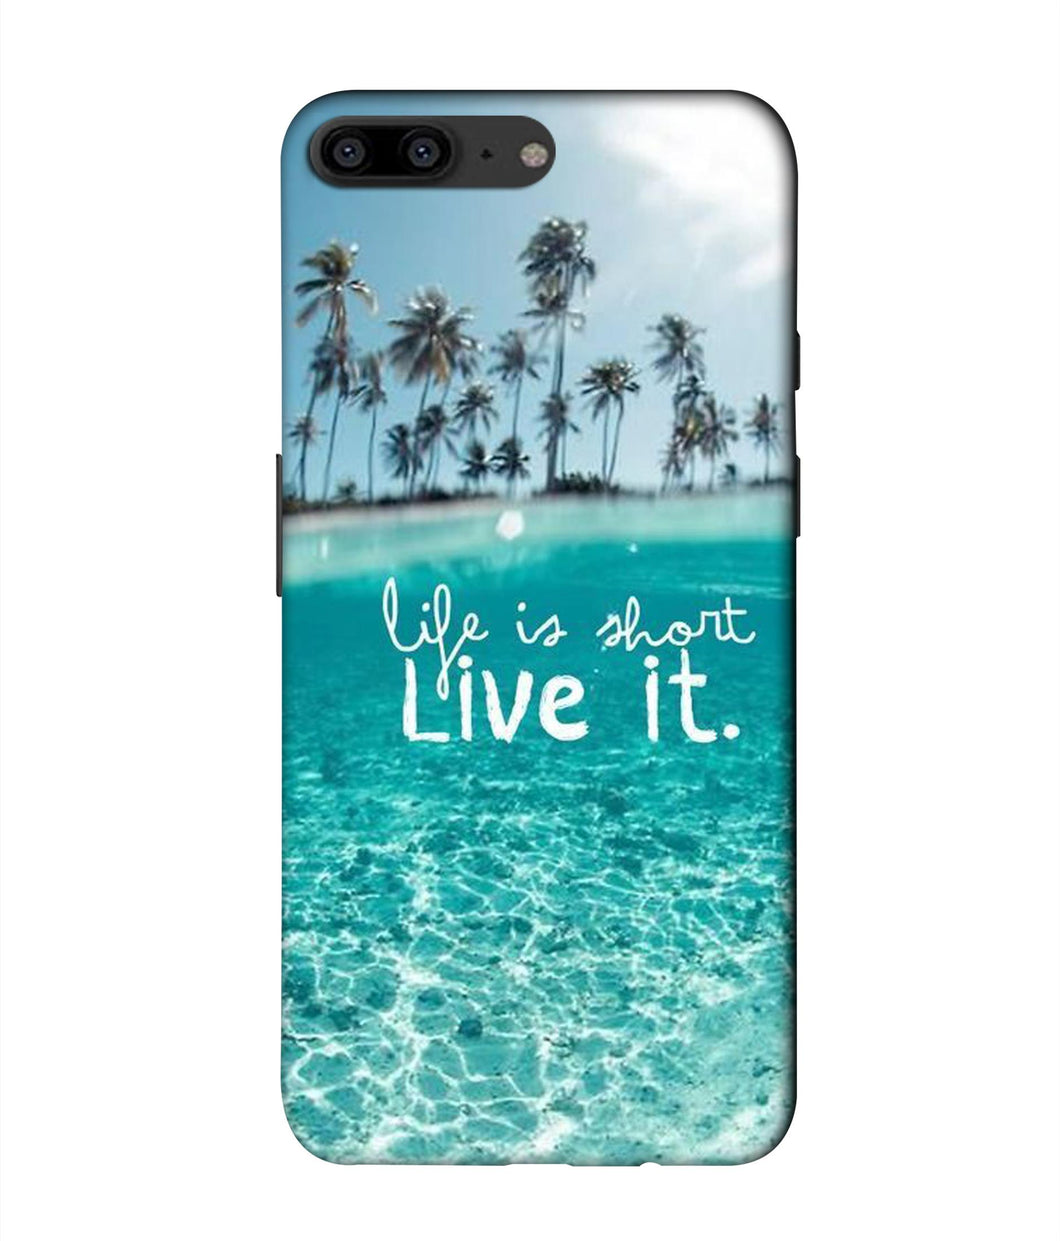 One plus 5 Live Life Mobile cover